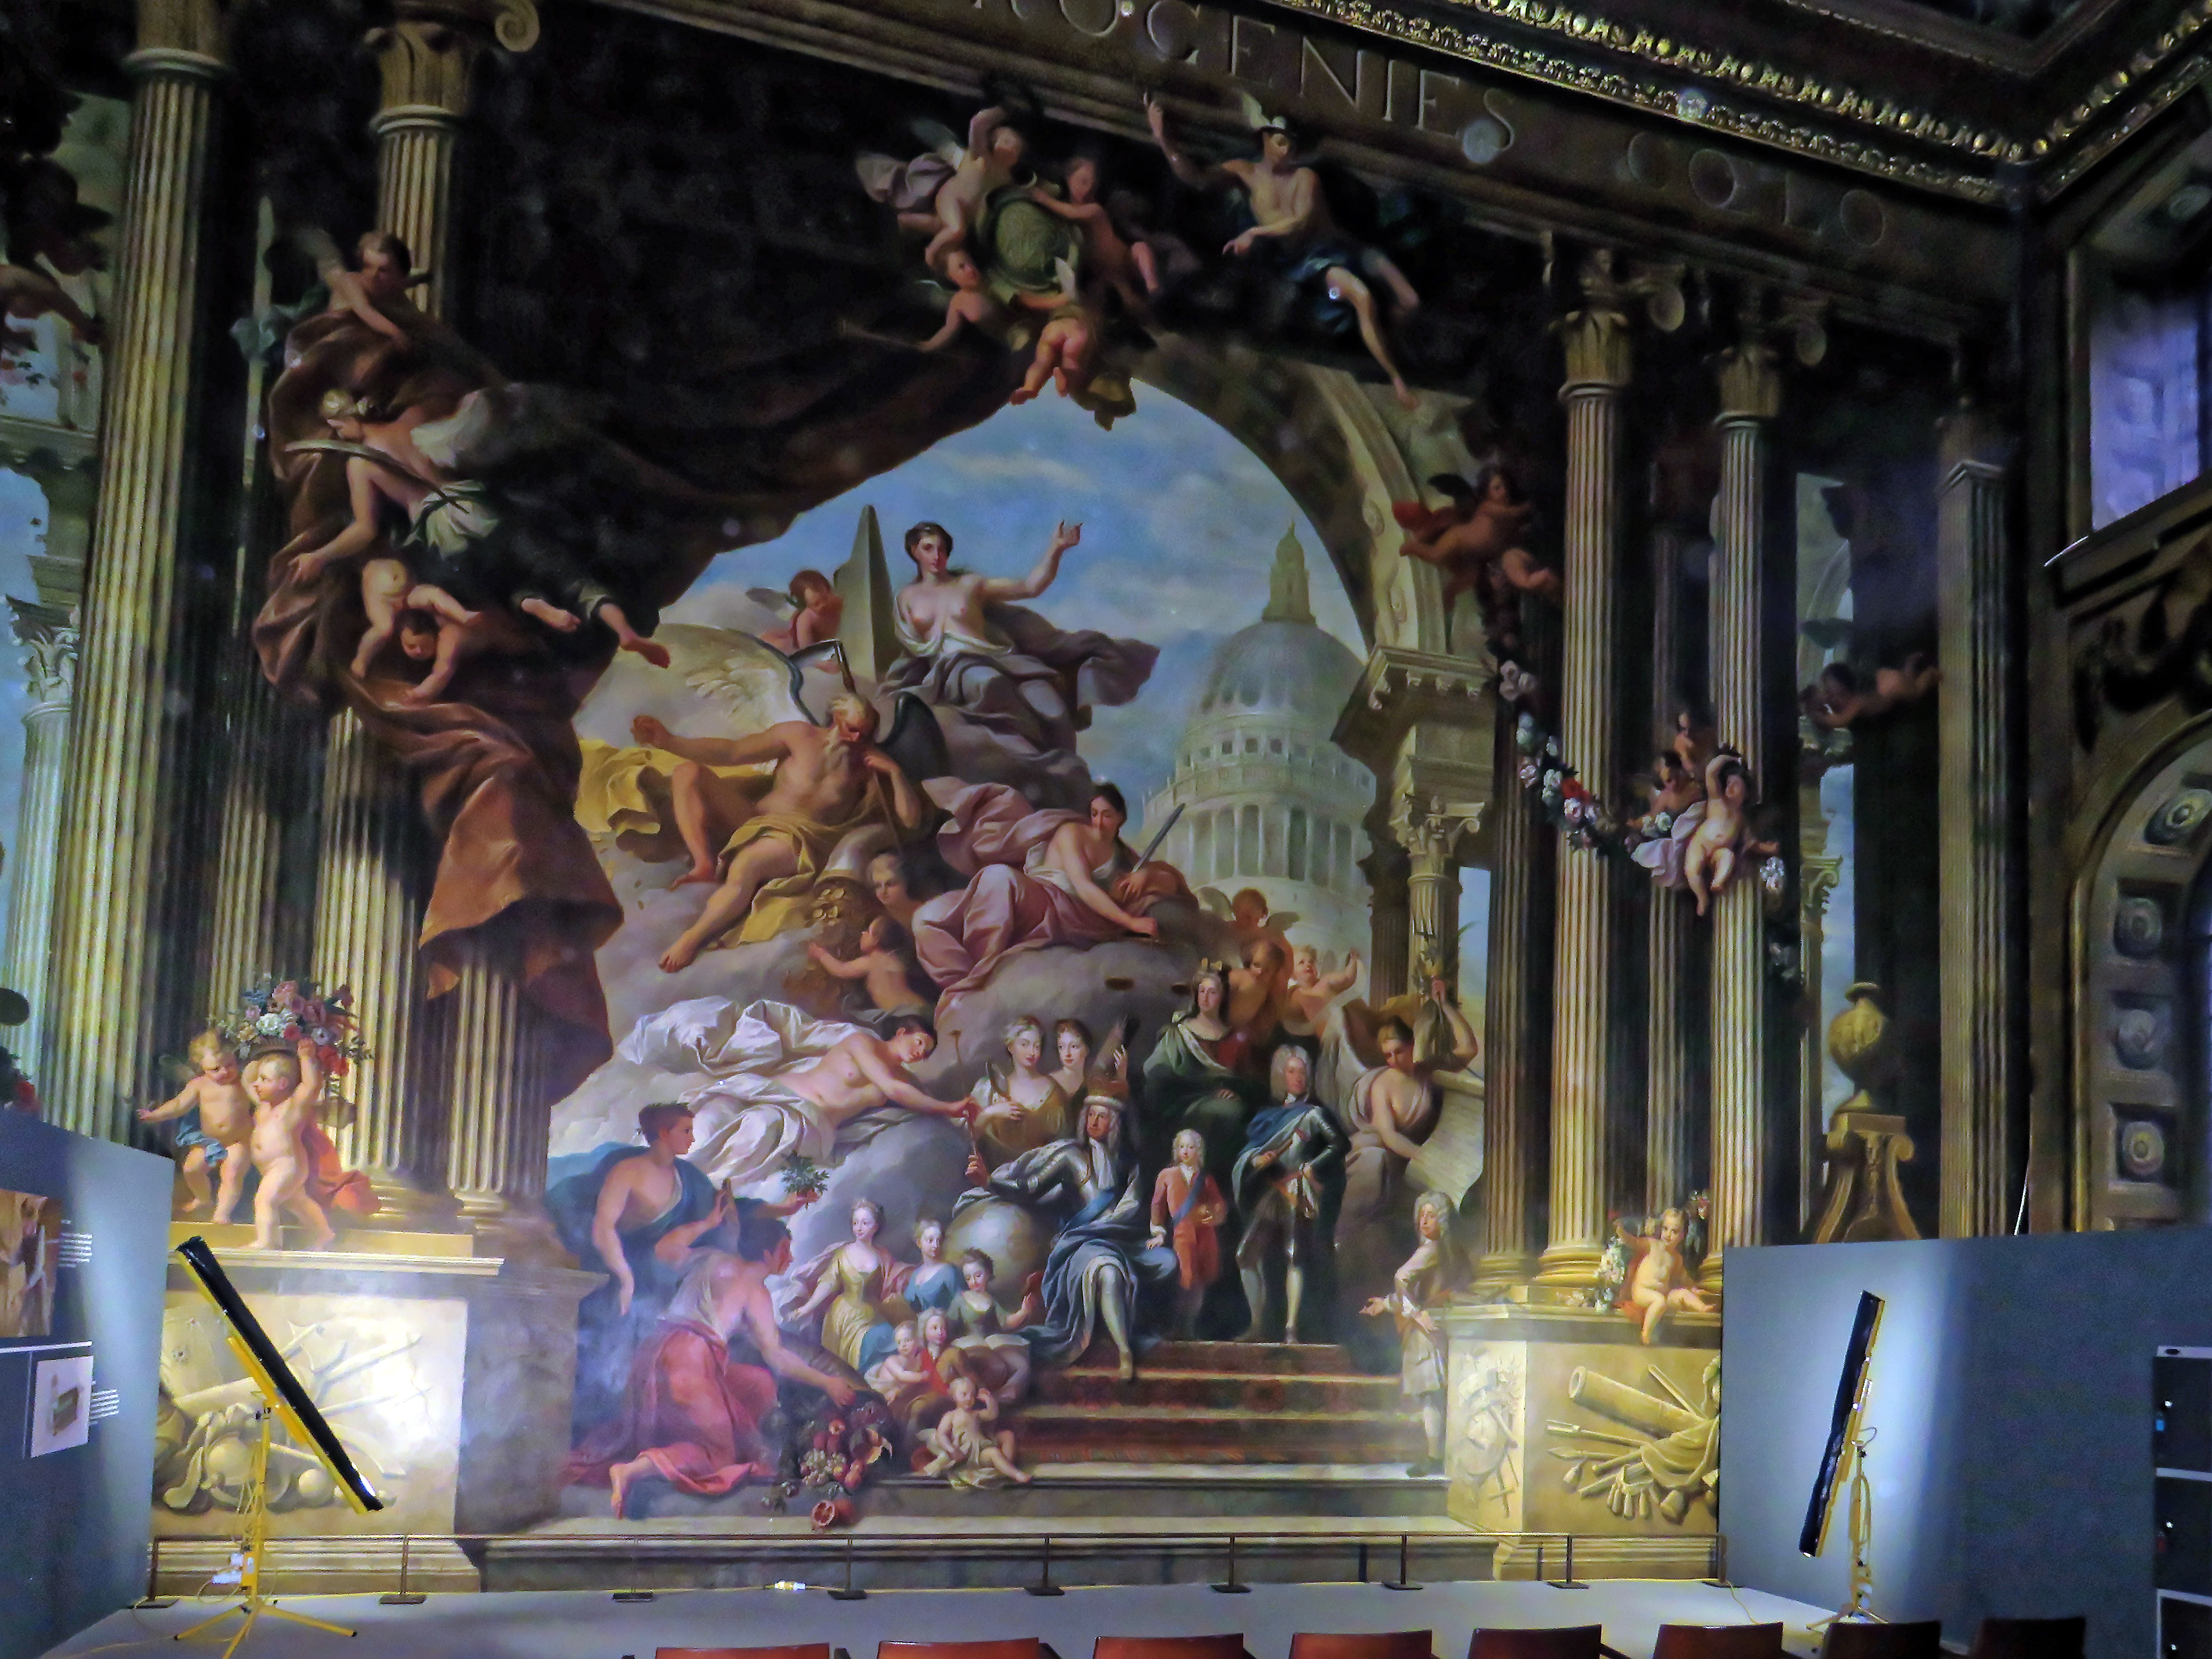 File:Painted Hall, Royal Naval College, Greenwich 02.jpg - Wikimedia Commons